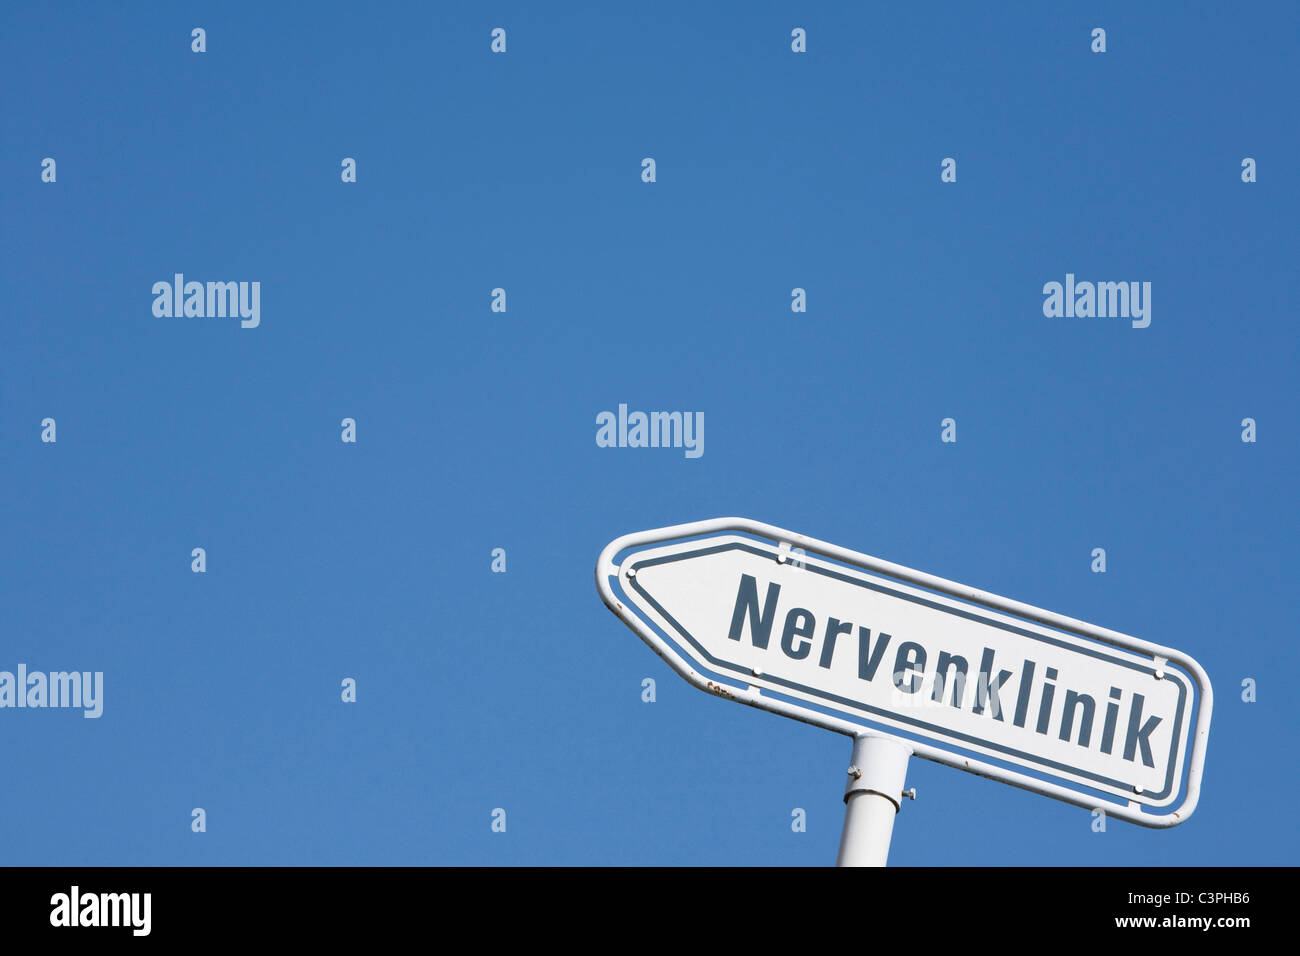 Germany, Direction sign to psychiatric clinic - Stock Image